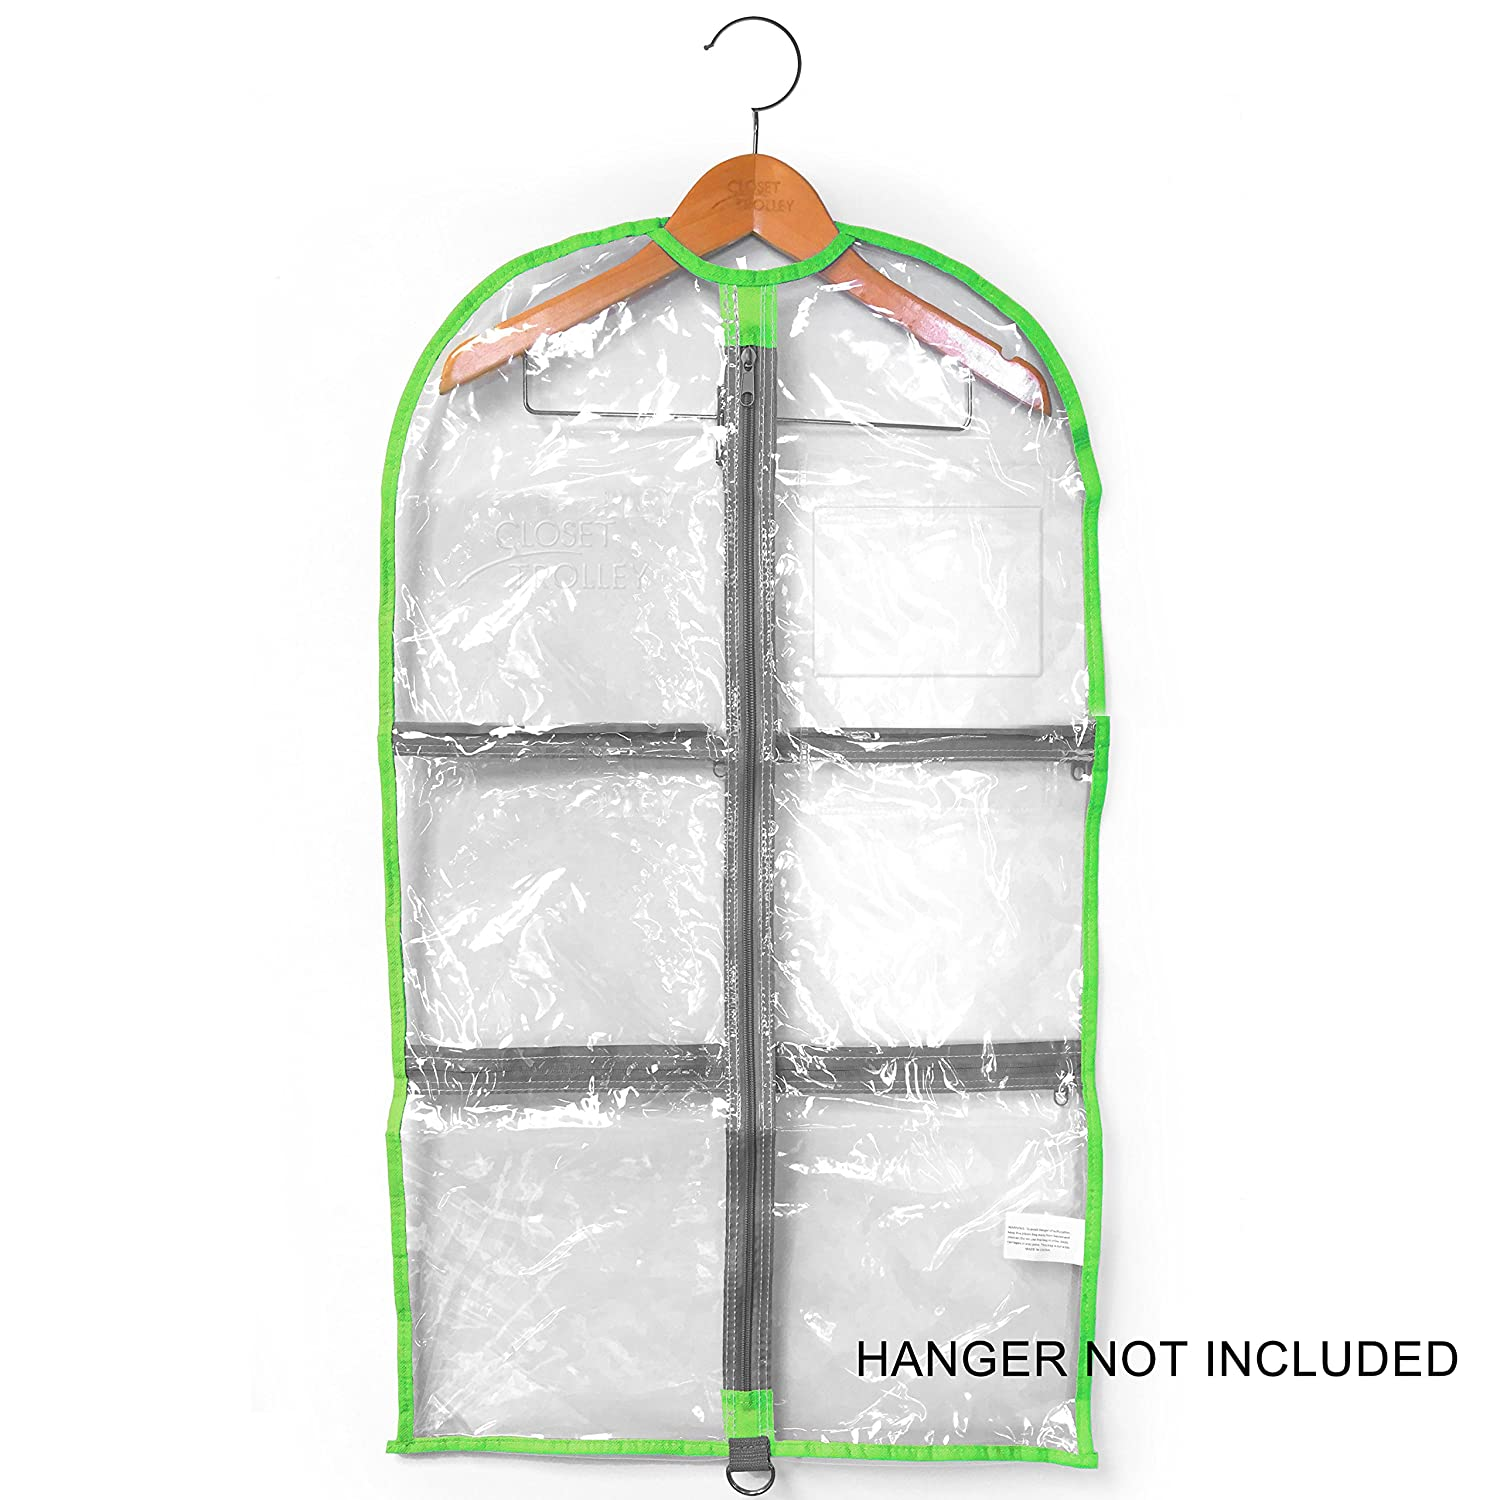 LONG Garment Bag 18 x 37 - Lime Green/Clear ELK Promotions Inc. CT1837